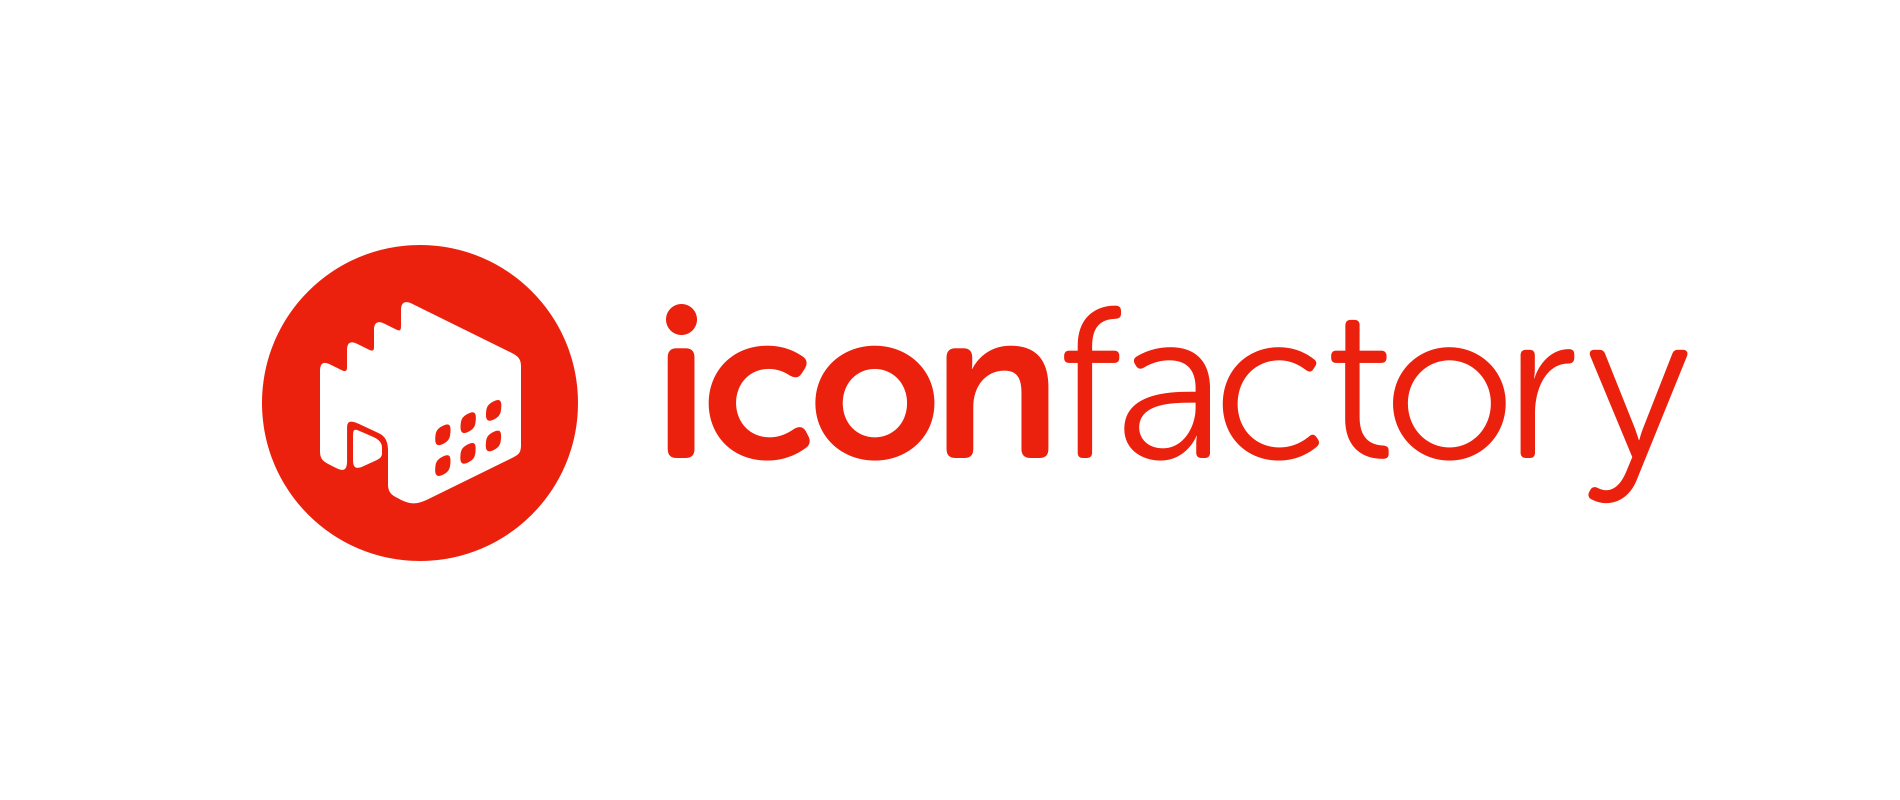 Apple Design Award winning firm Iconfactory